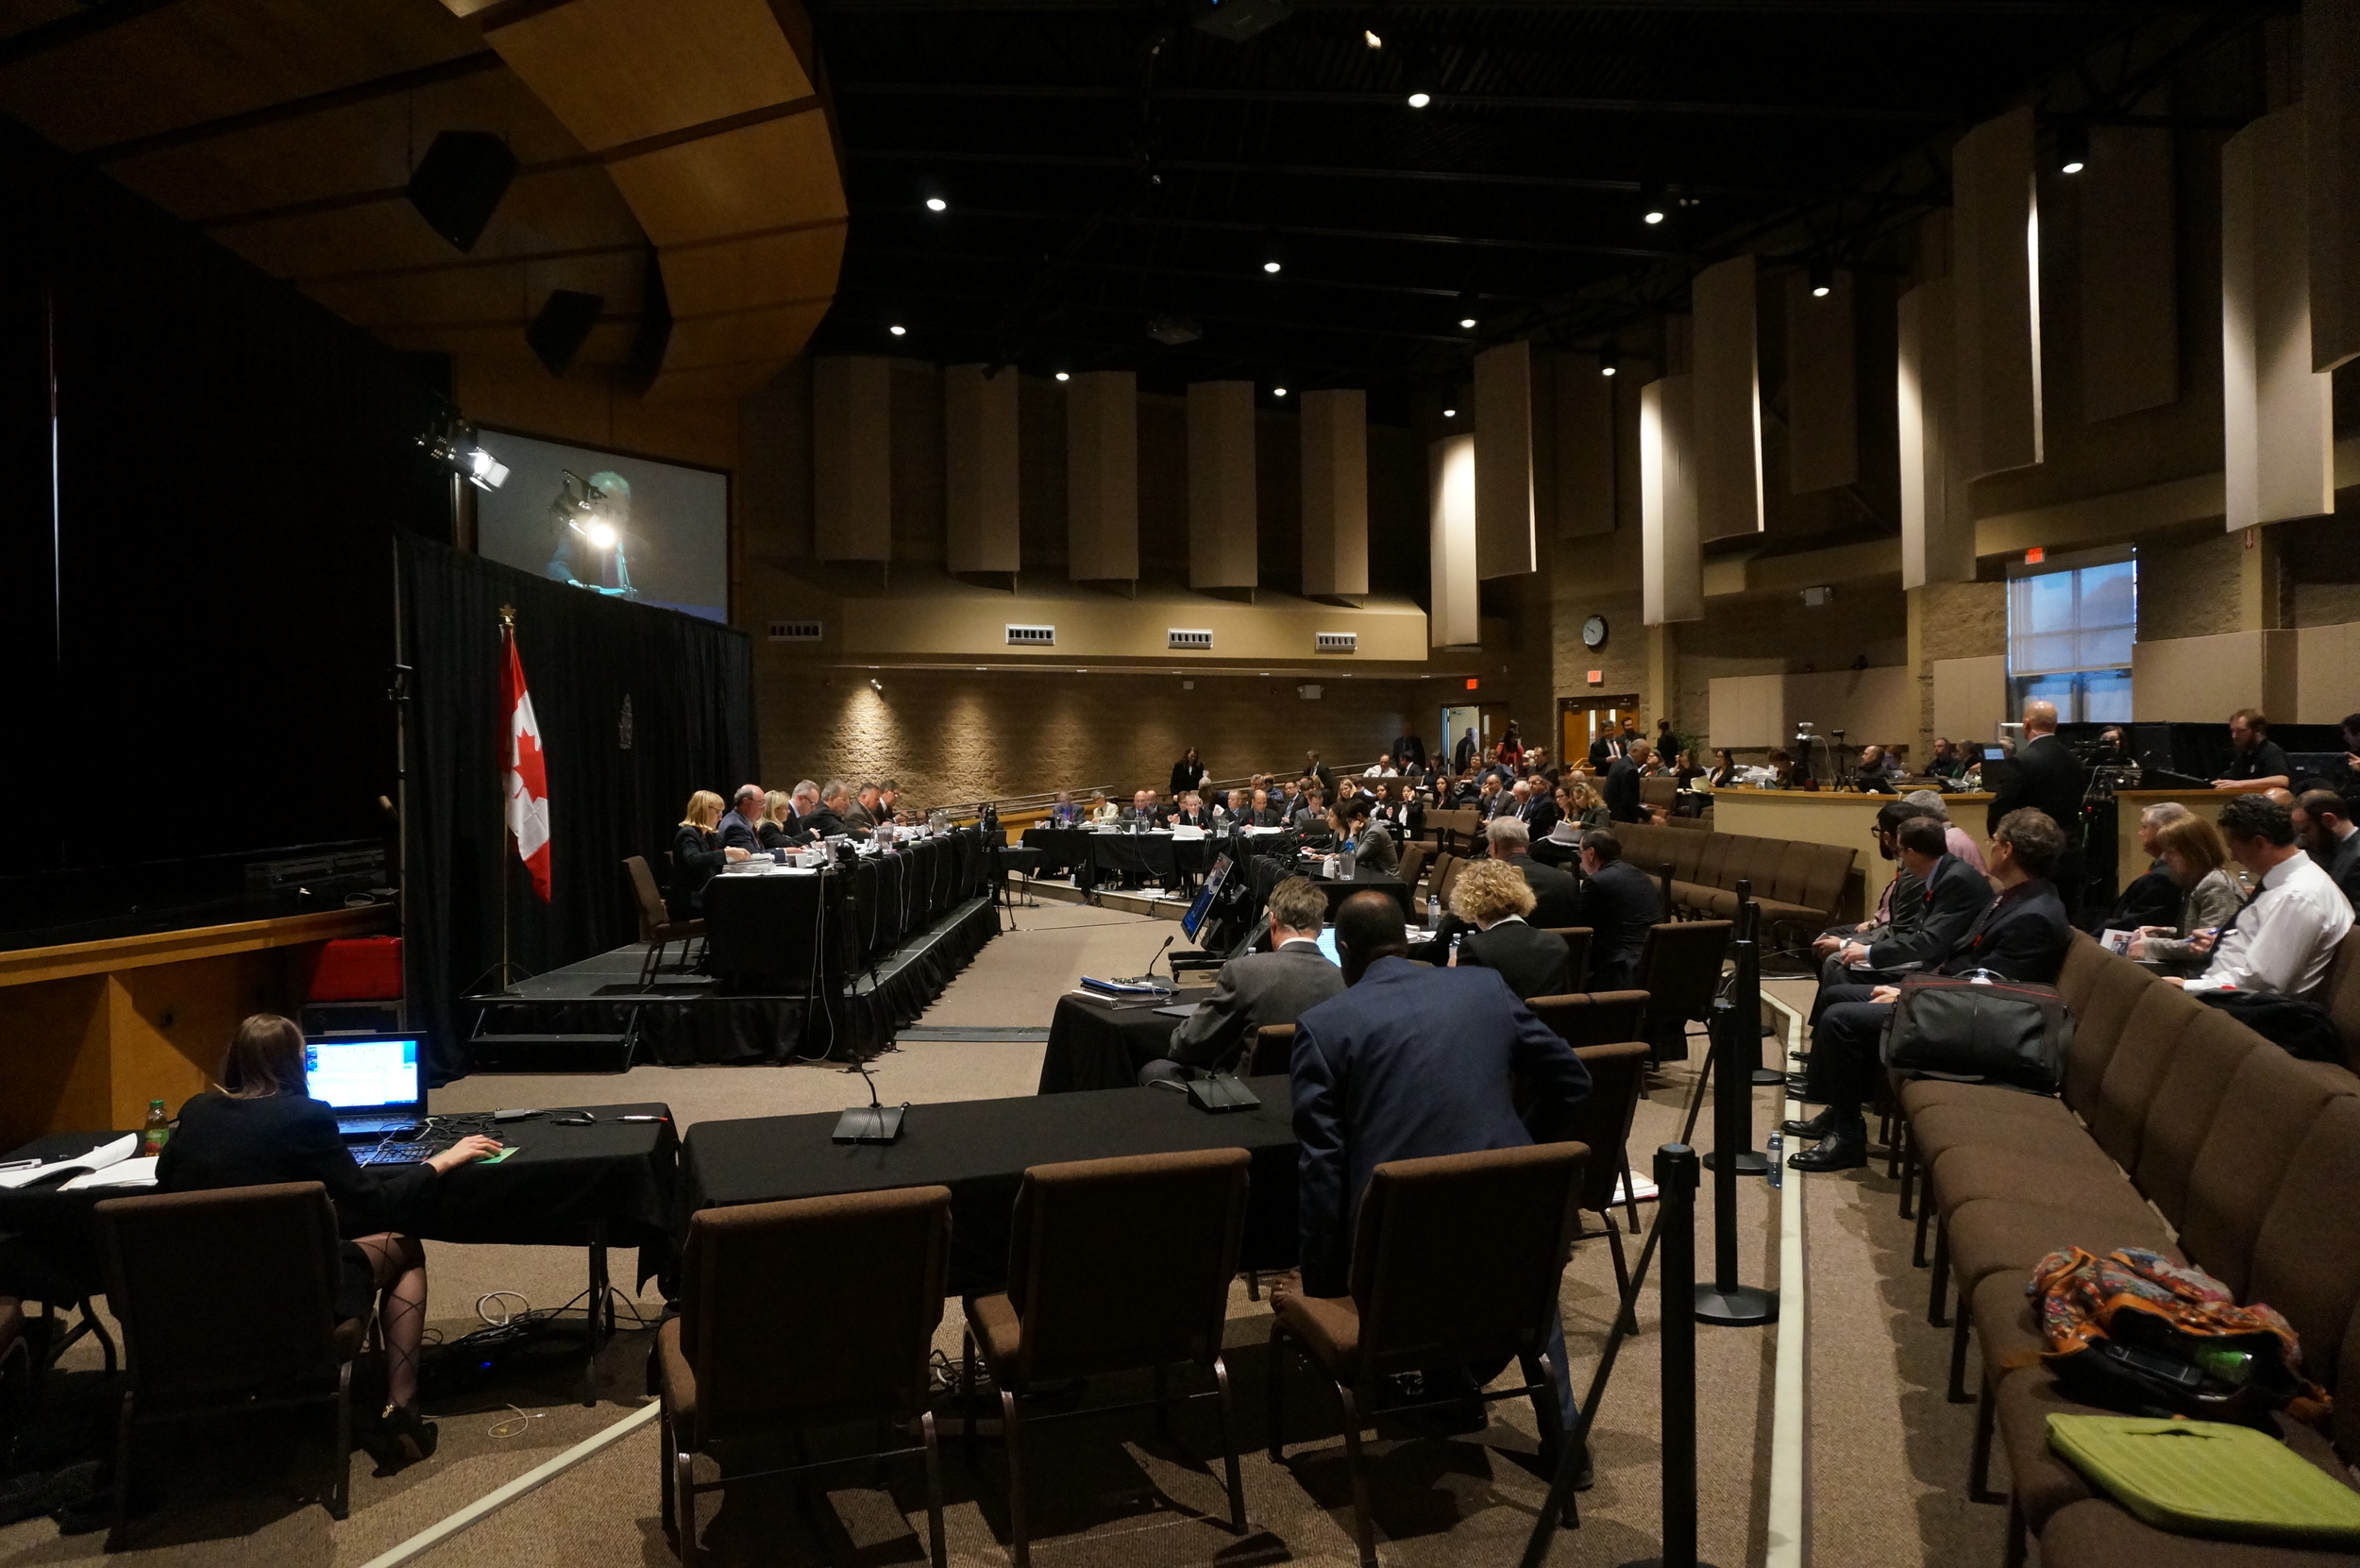 The Commission sitting on the raised stage to the left. OPG representatives, intervenor tables and CNSC staff located in the cordoned off area facing the Commission. (Photo by Lake Ontario Waterkeeper)